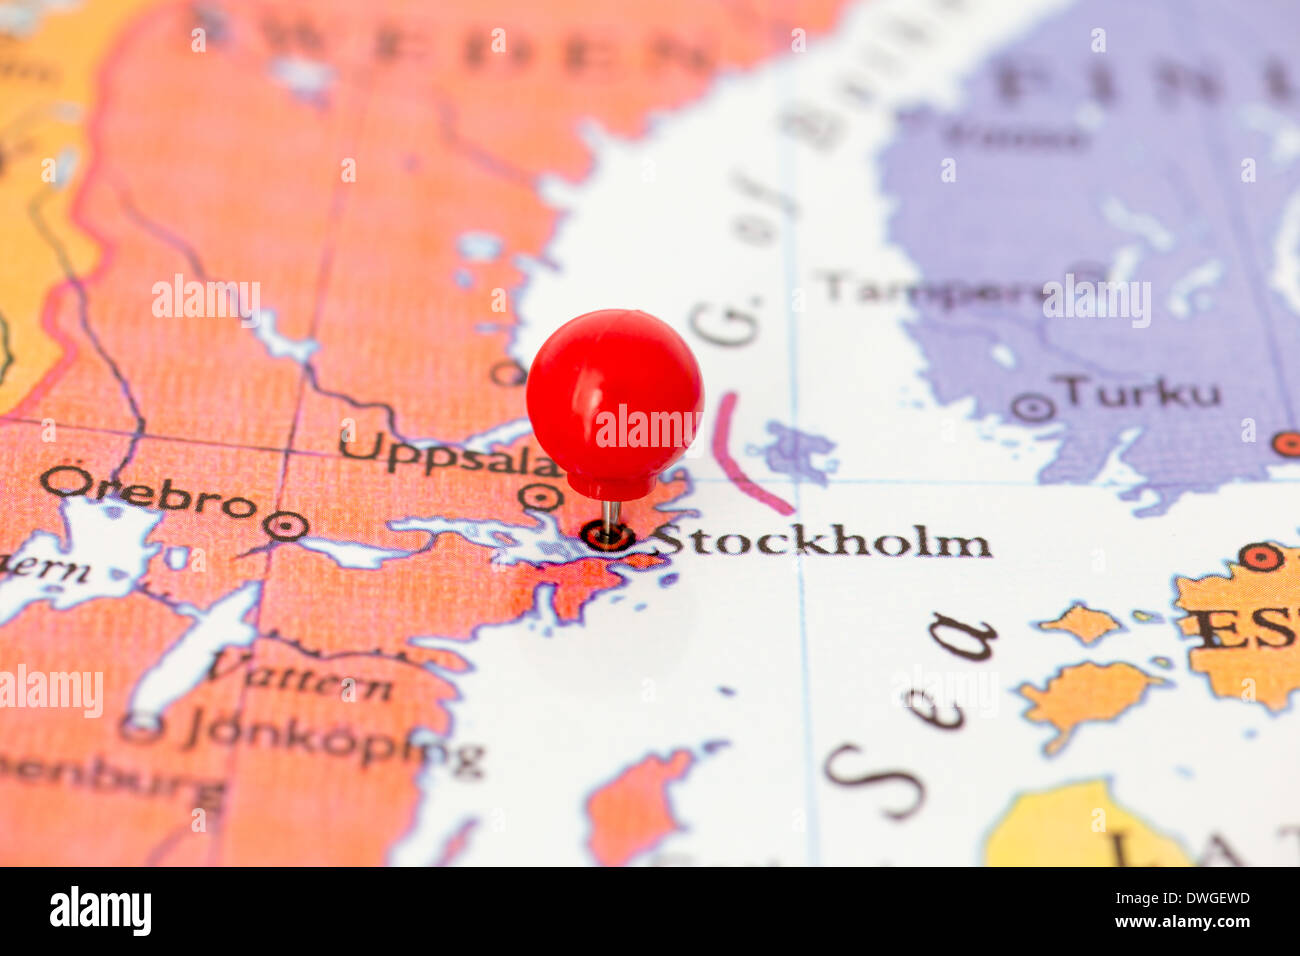 Round Red Thumb Tack Pinched Through City Of Stockholm On Sweden - Sweden map search